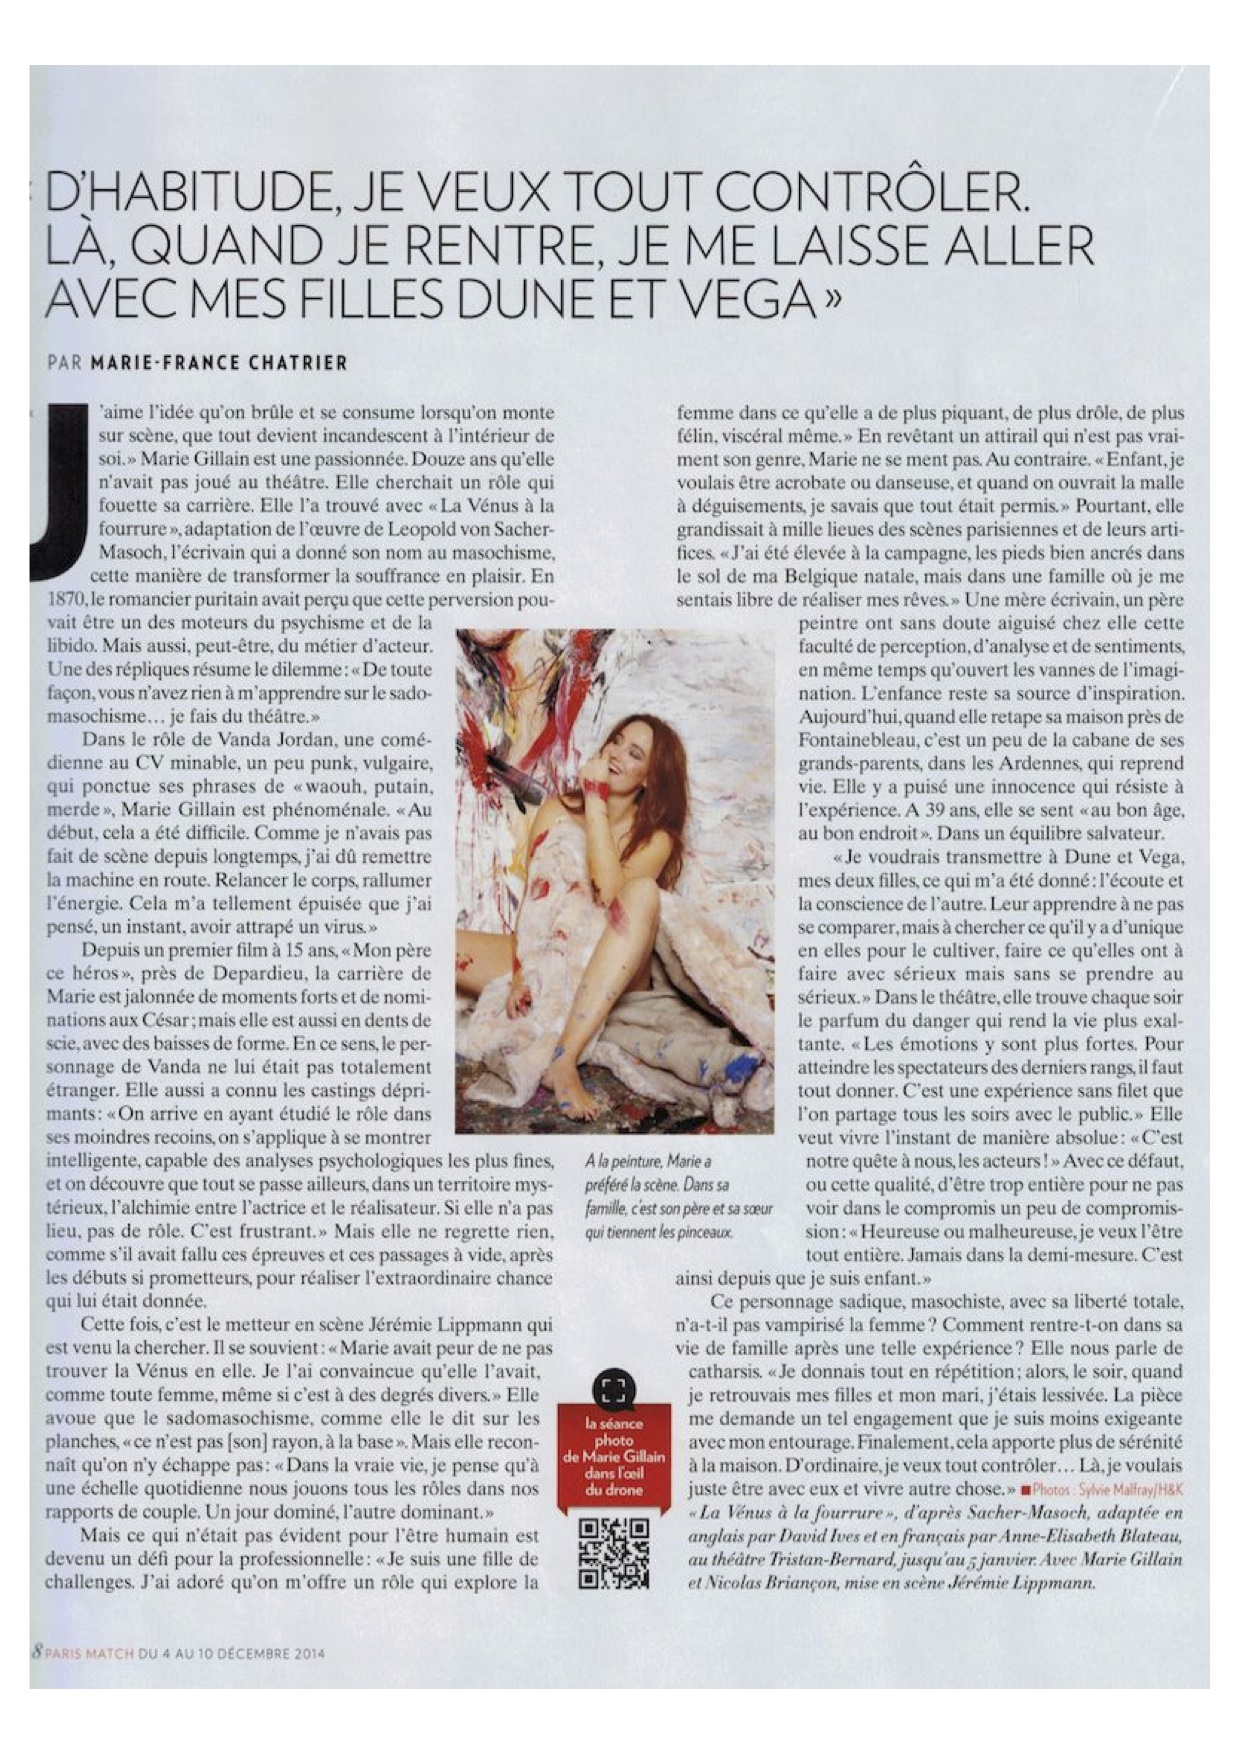 Paris Match p5 - 04.12.14